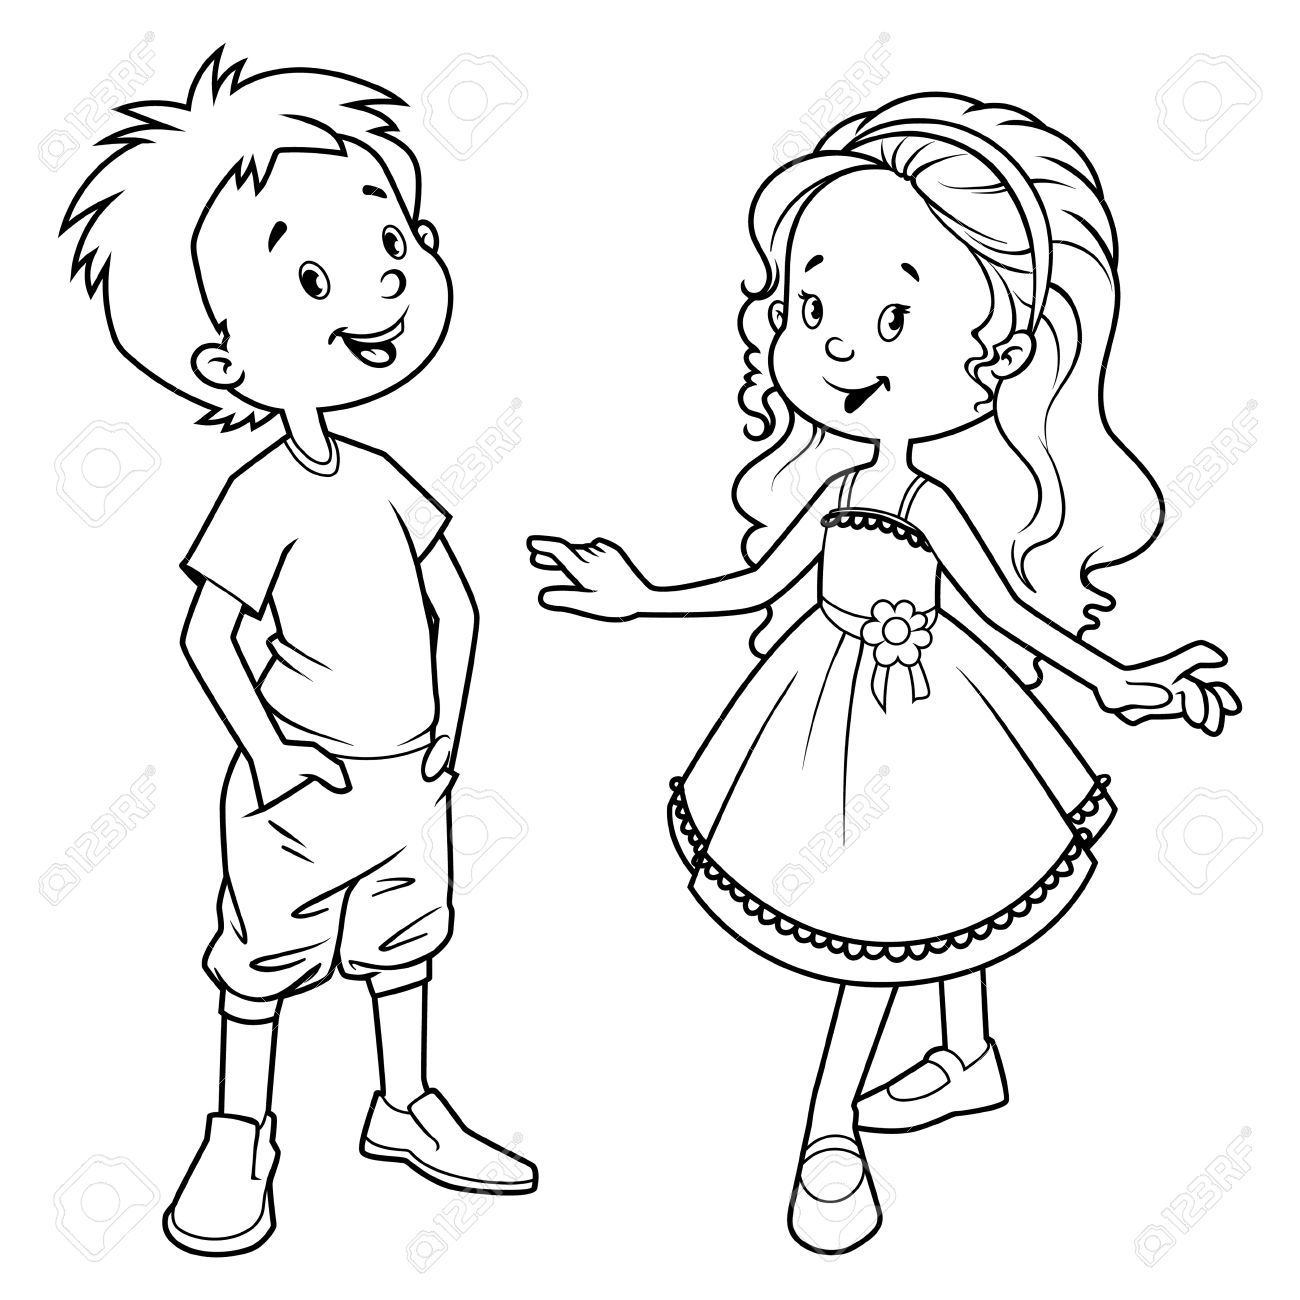 Girl And Boy Clipart Black And White.